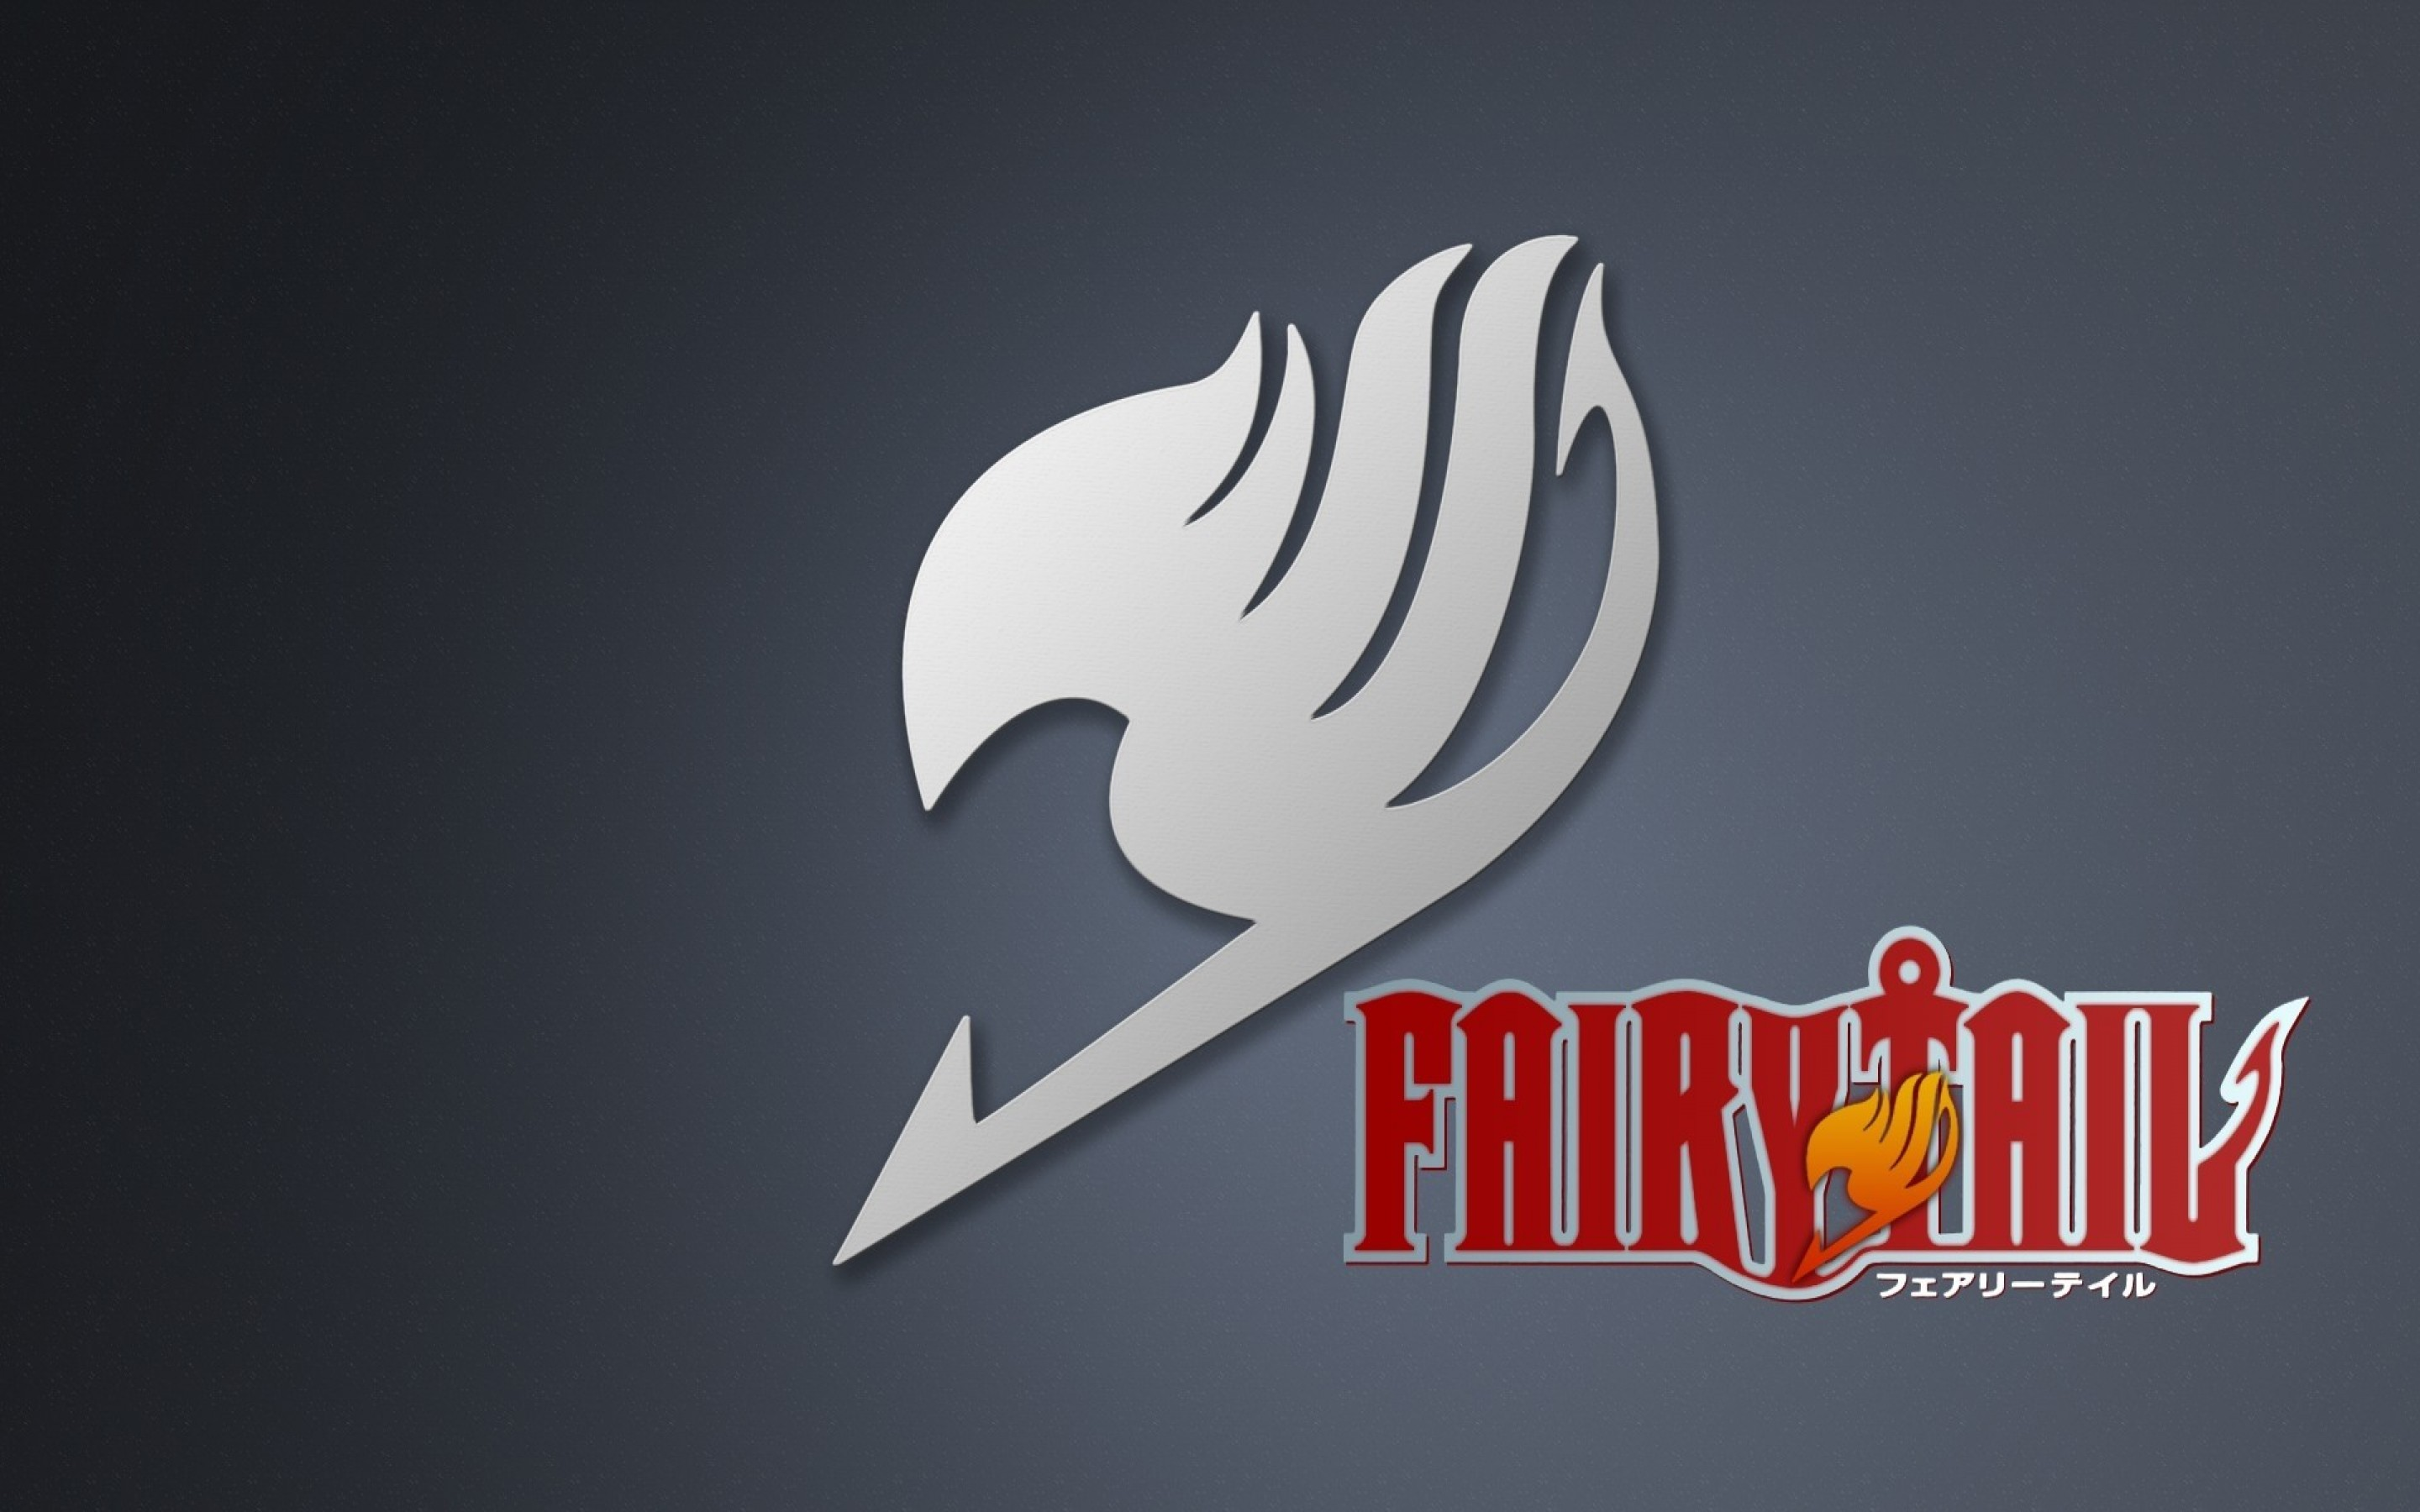 Fairy Tail Logo HD Wallpaper in High Resolution at Anime Wallpaper 2880x1800